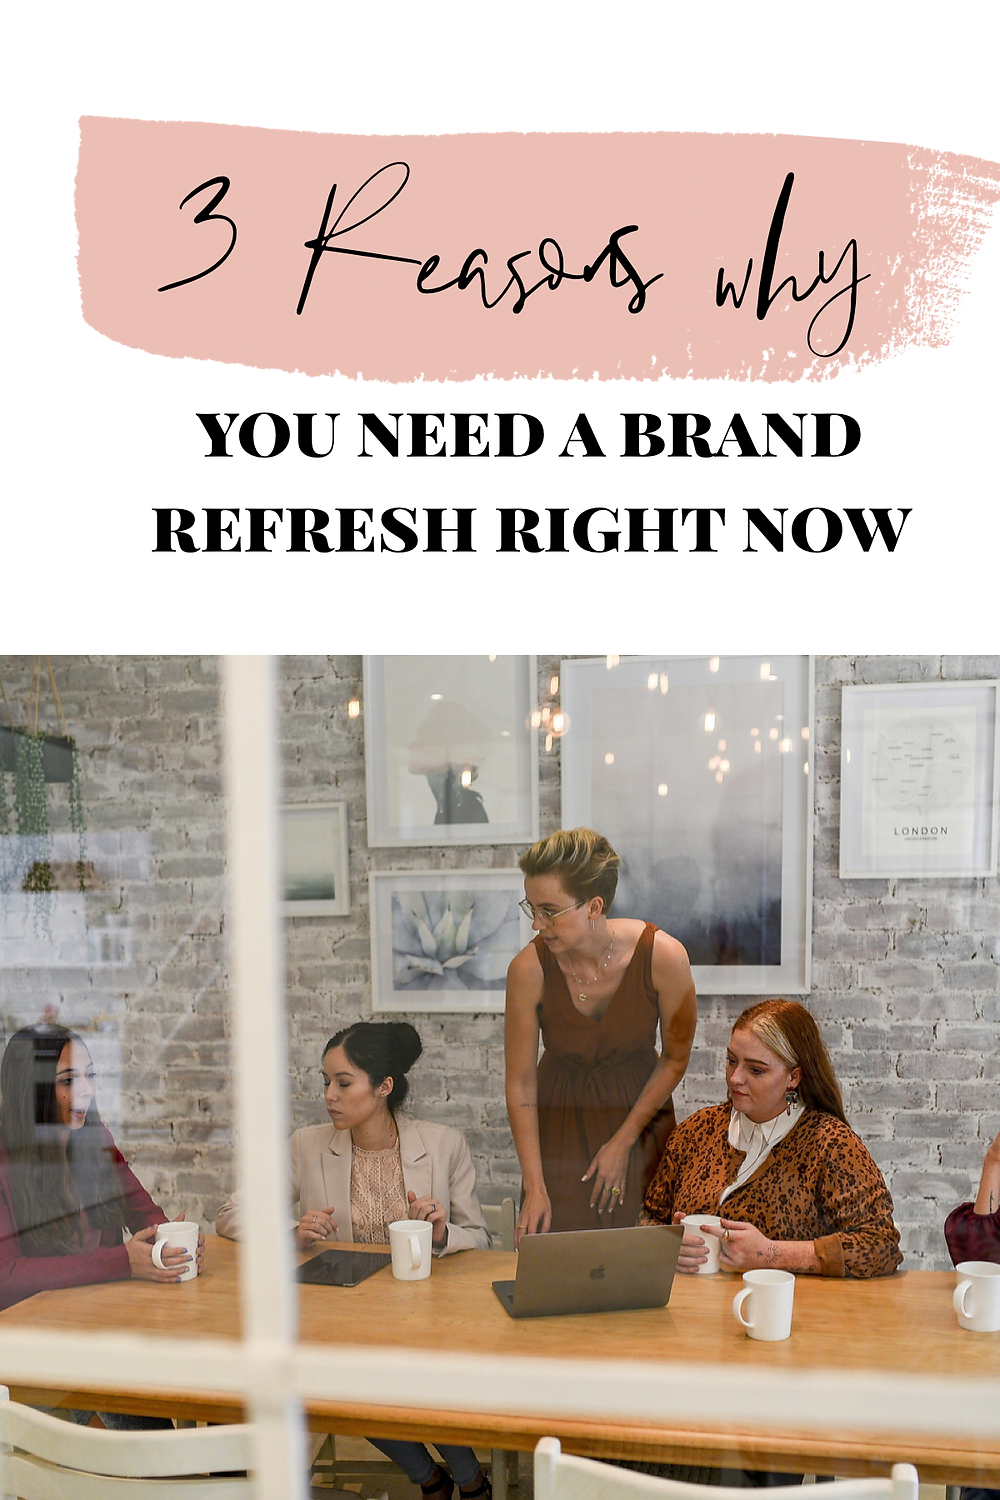 small business owner female entrepreneur business tips business advice  corporate photographer blog post female business owner johannesburg business small companie south africa business corporate photographer design graphic design logo design brand refresh